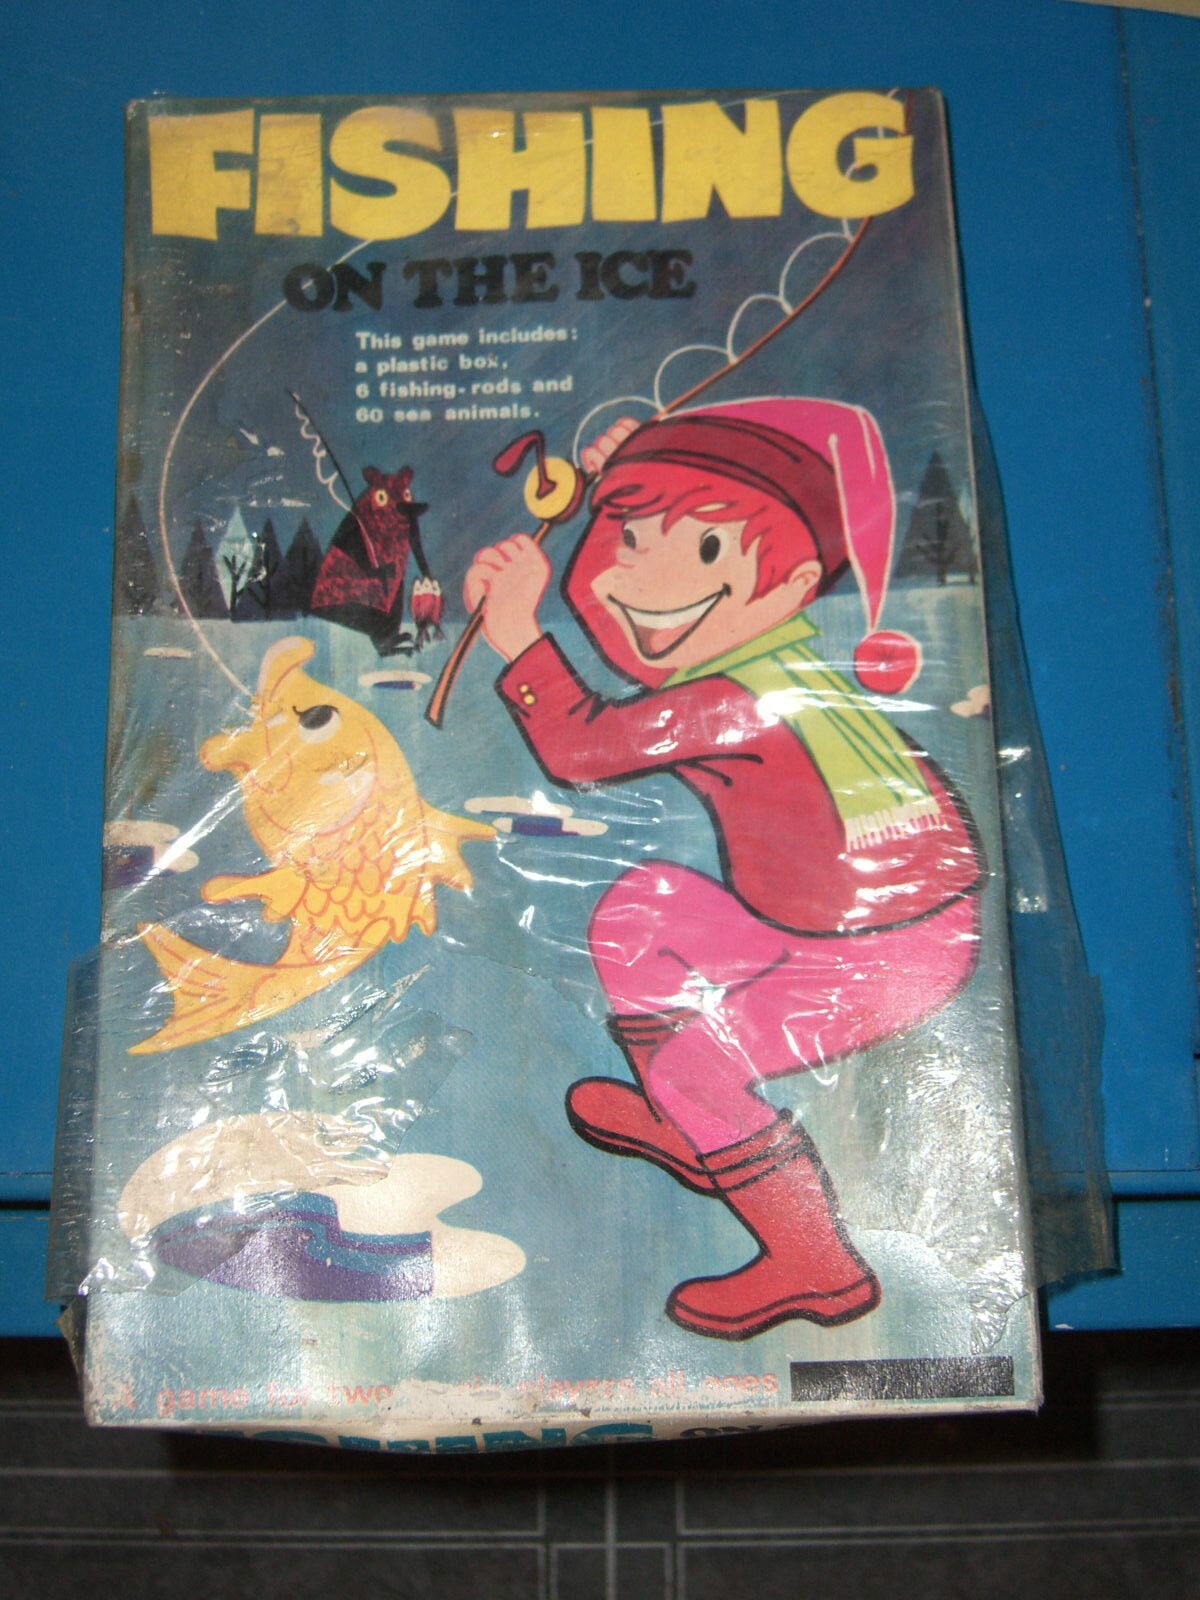 60'S VINTAGE BOARD GAME FISHING ON THE ICE HONG KONG MIB SEALED